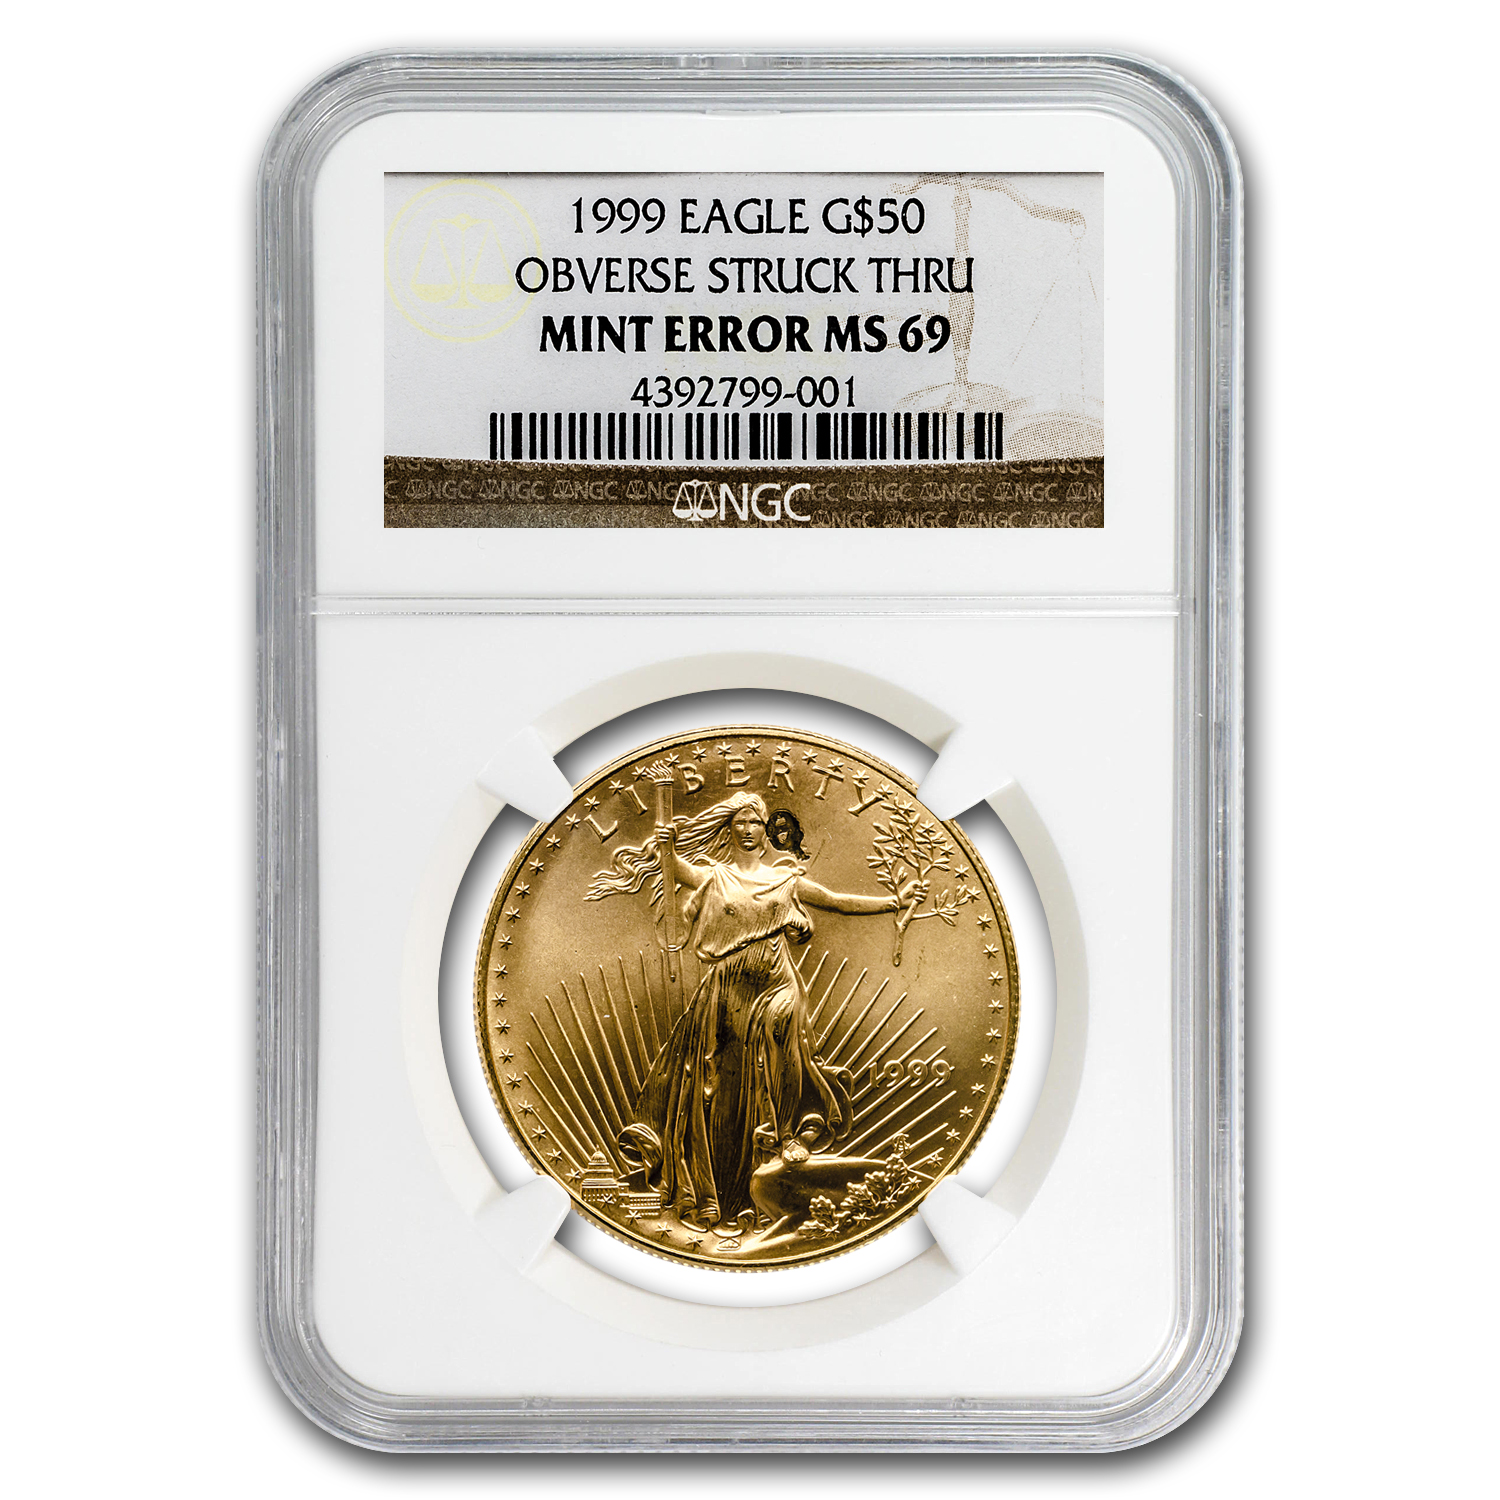 1999 1 oz Gold American Eagle MS-69 NGC (Obv Mint Error)